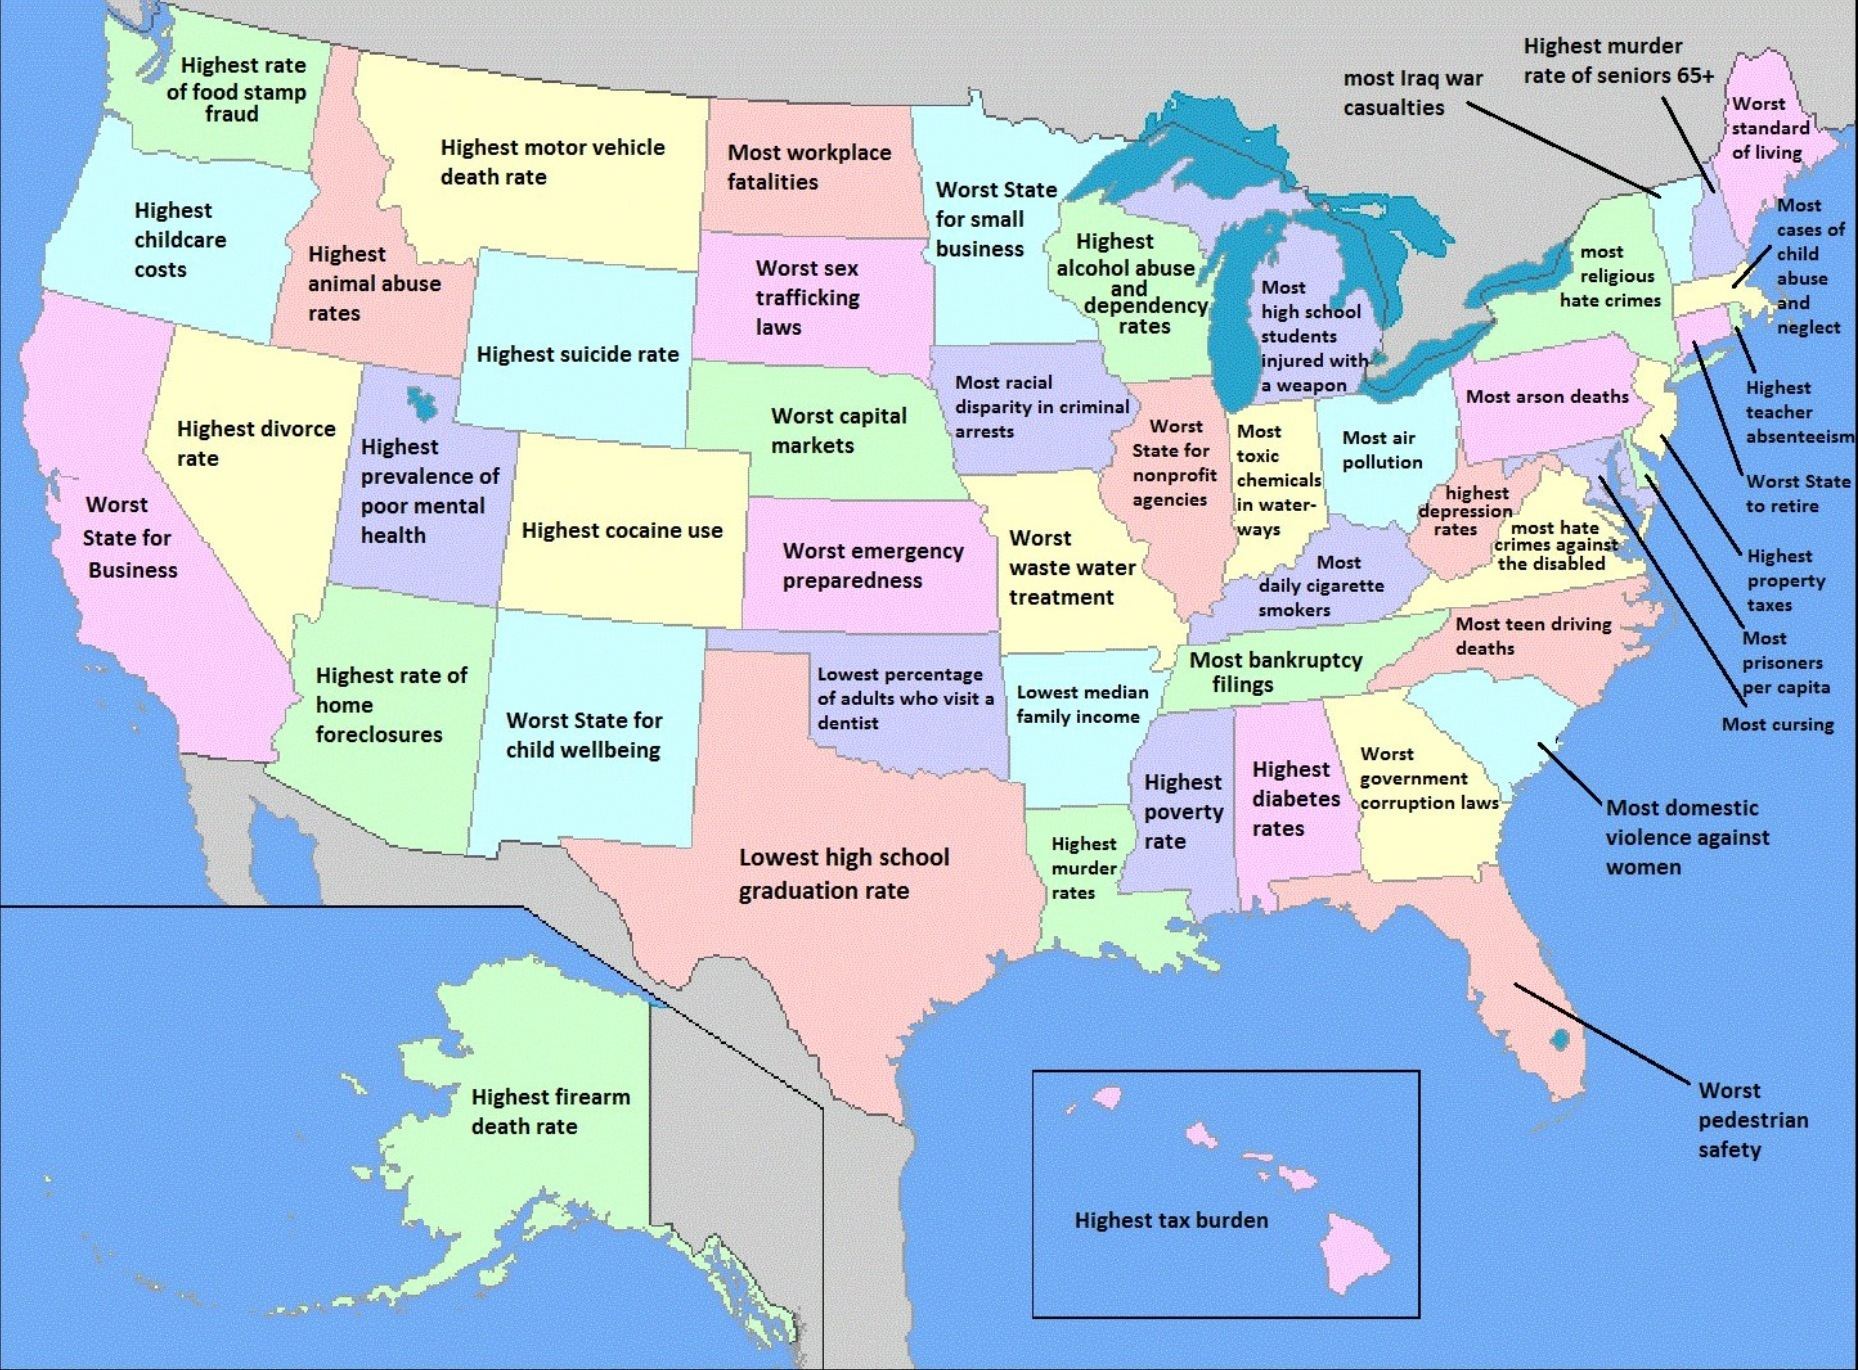 North America States Map My Blog - Map of states of america